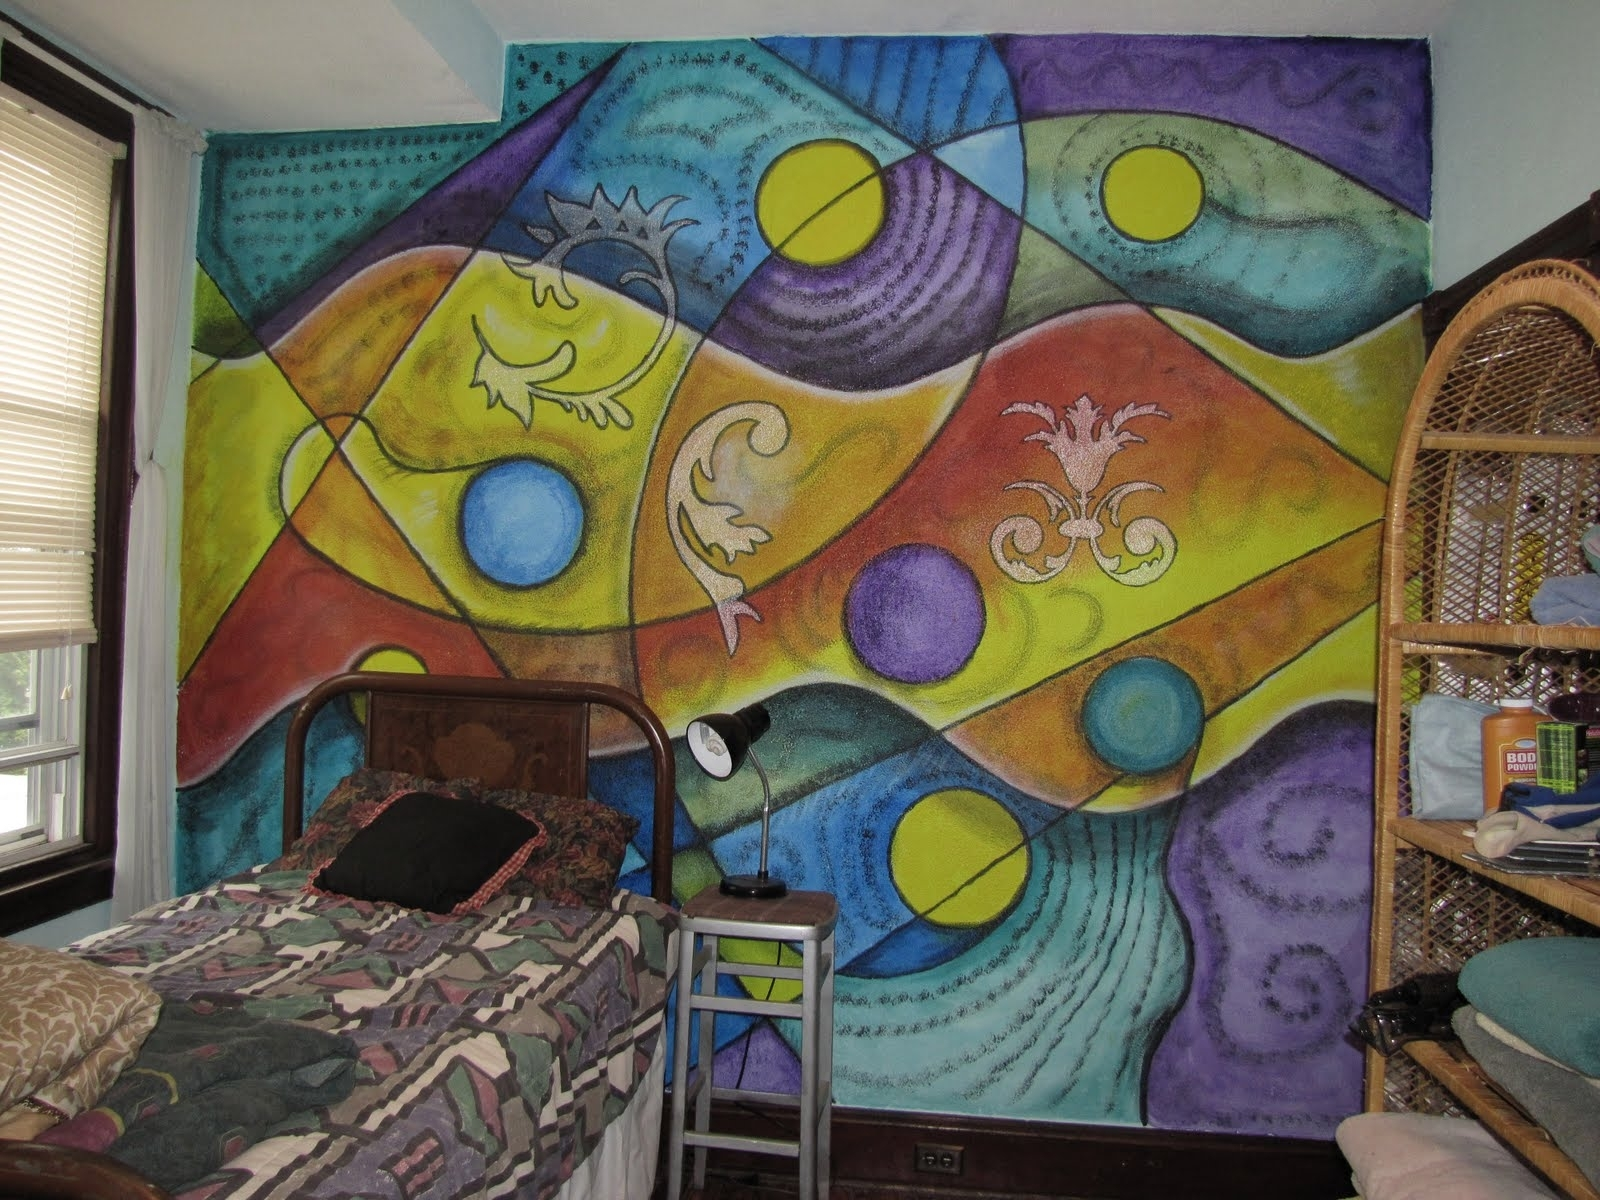 Painting A Colorful Abstract Mural | Mssurreal Intended For Current Abstract Art Wall Murals (View 8 of 20)